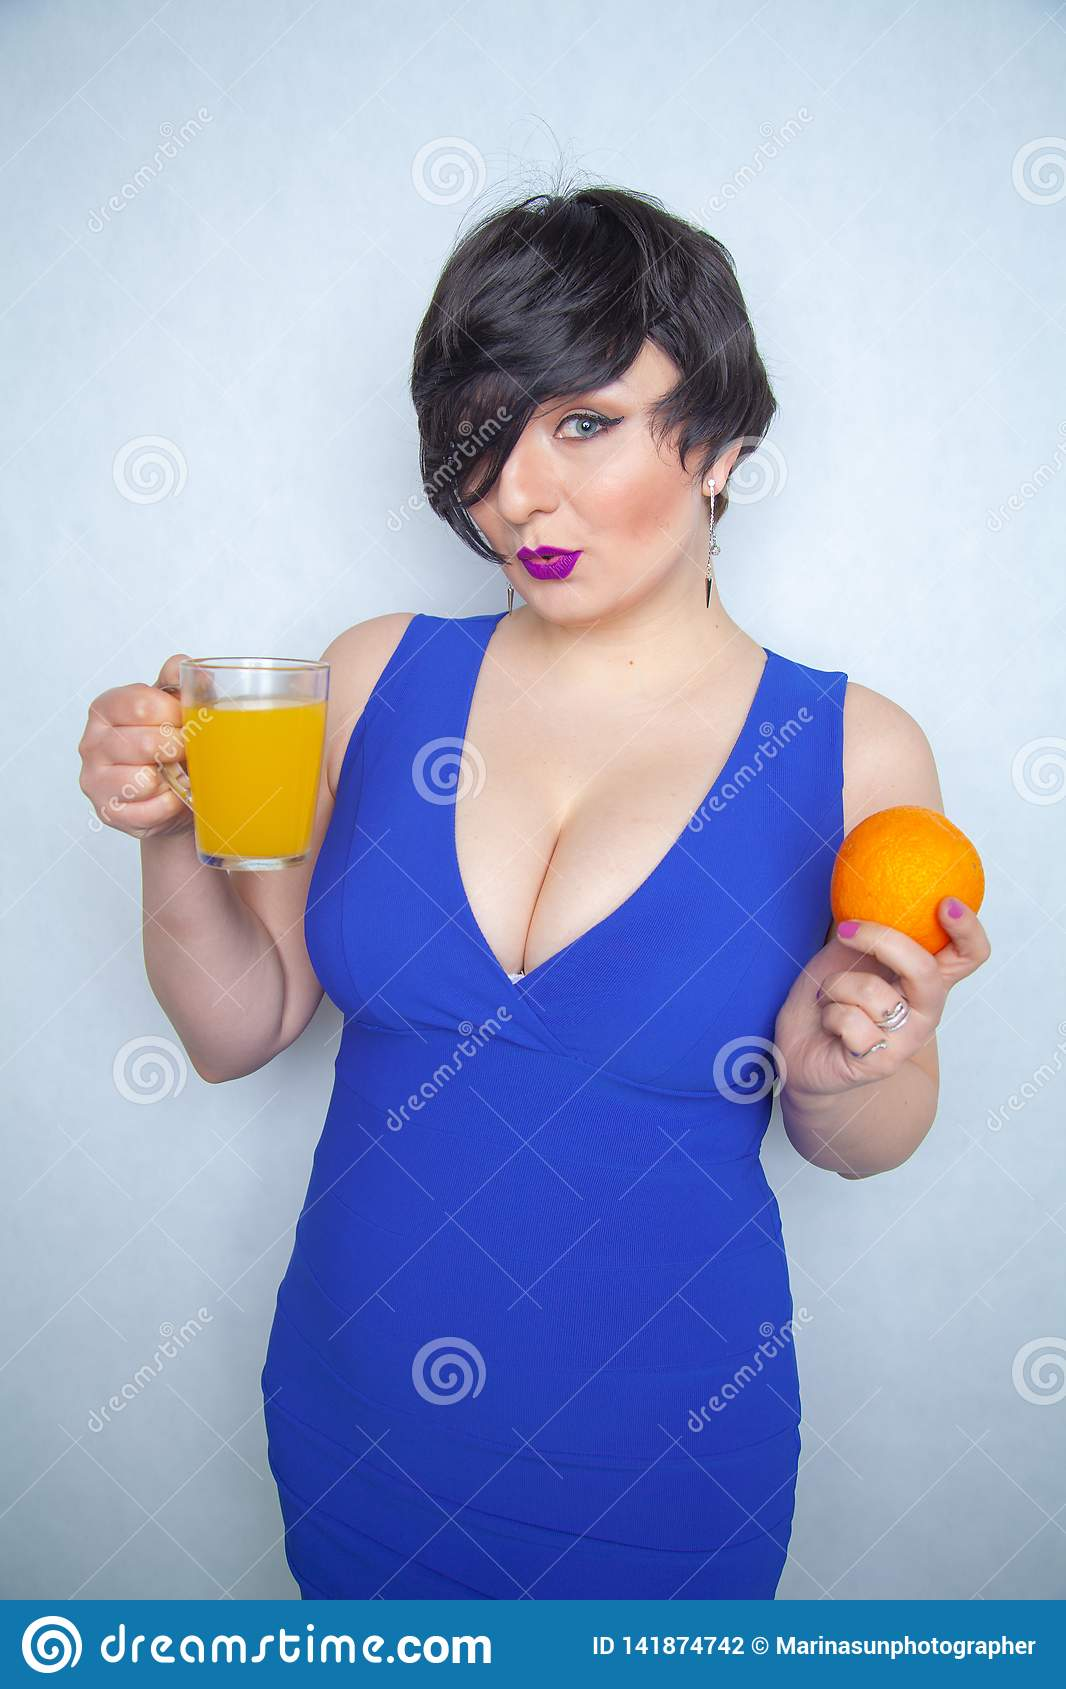 Sexy Chubby Stock Images - Download 184 Royalty Free Photos-7418